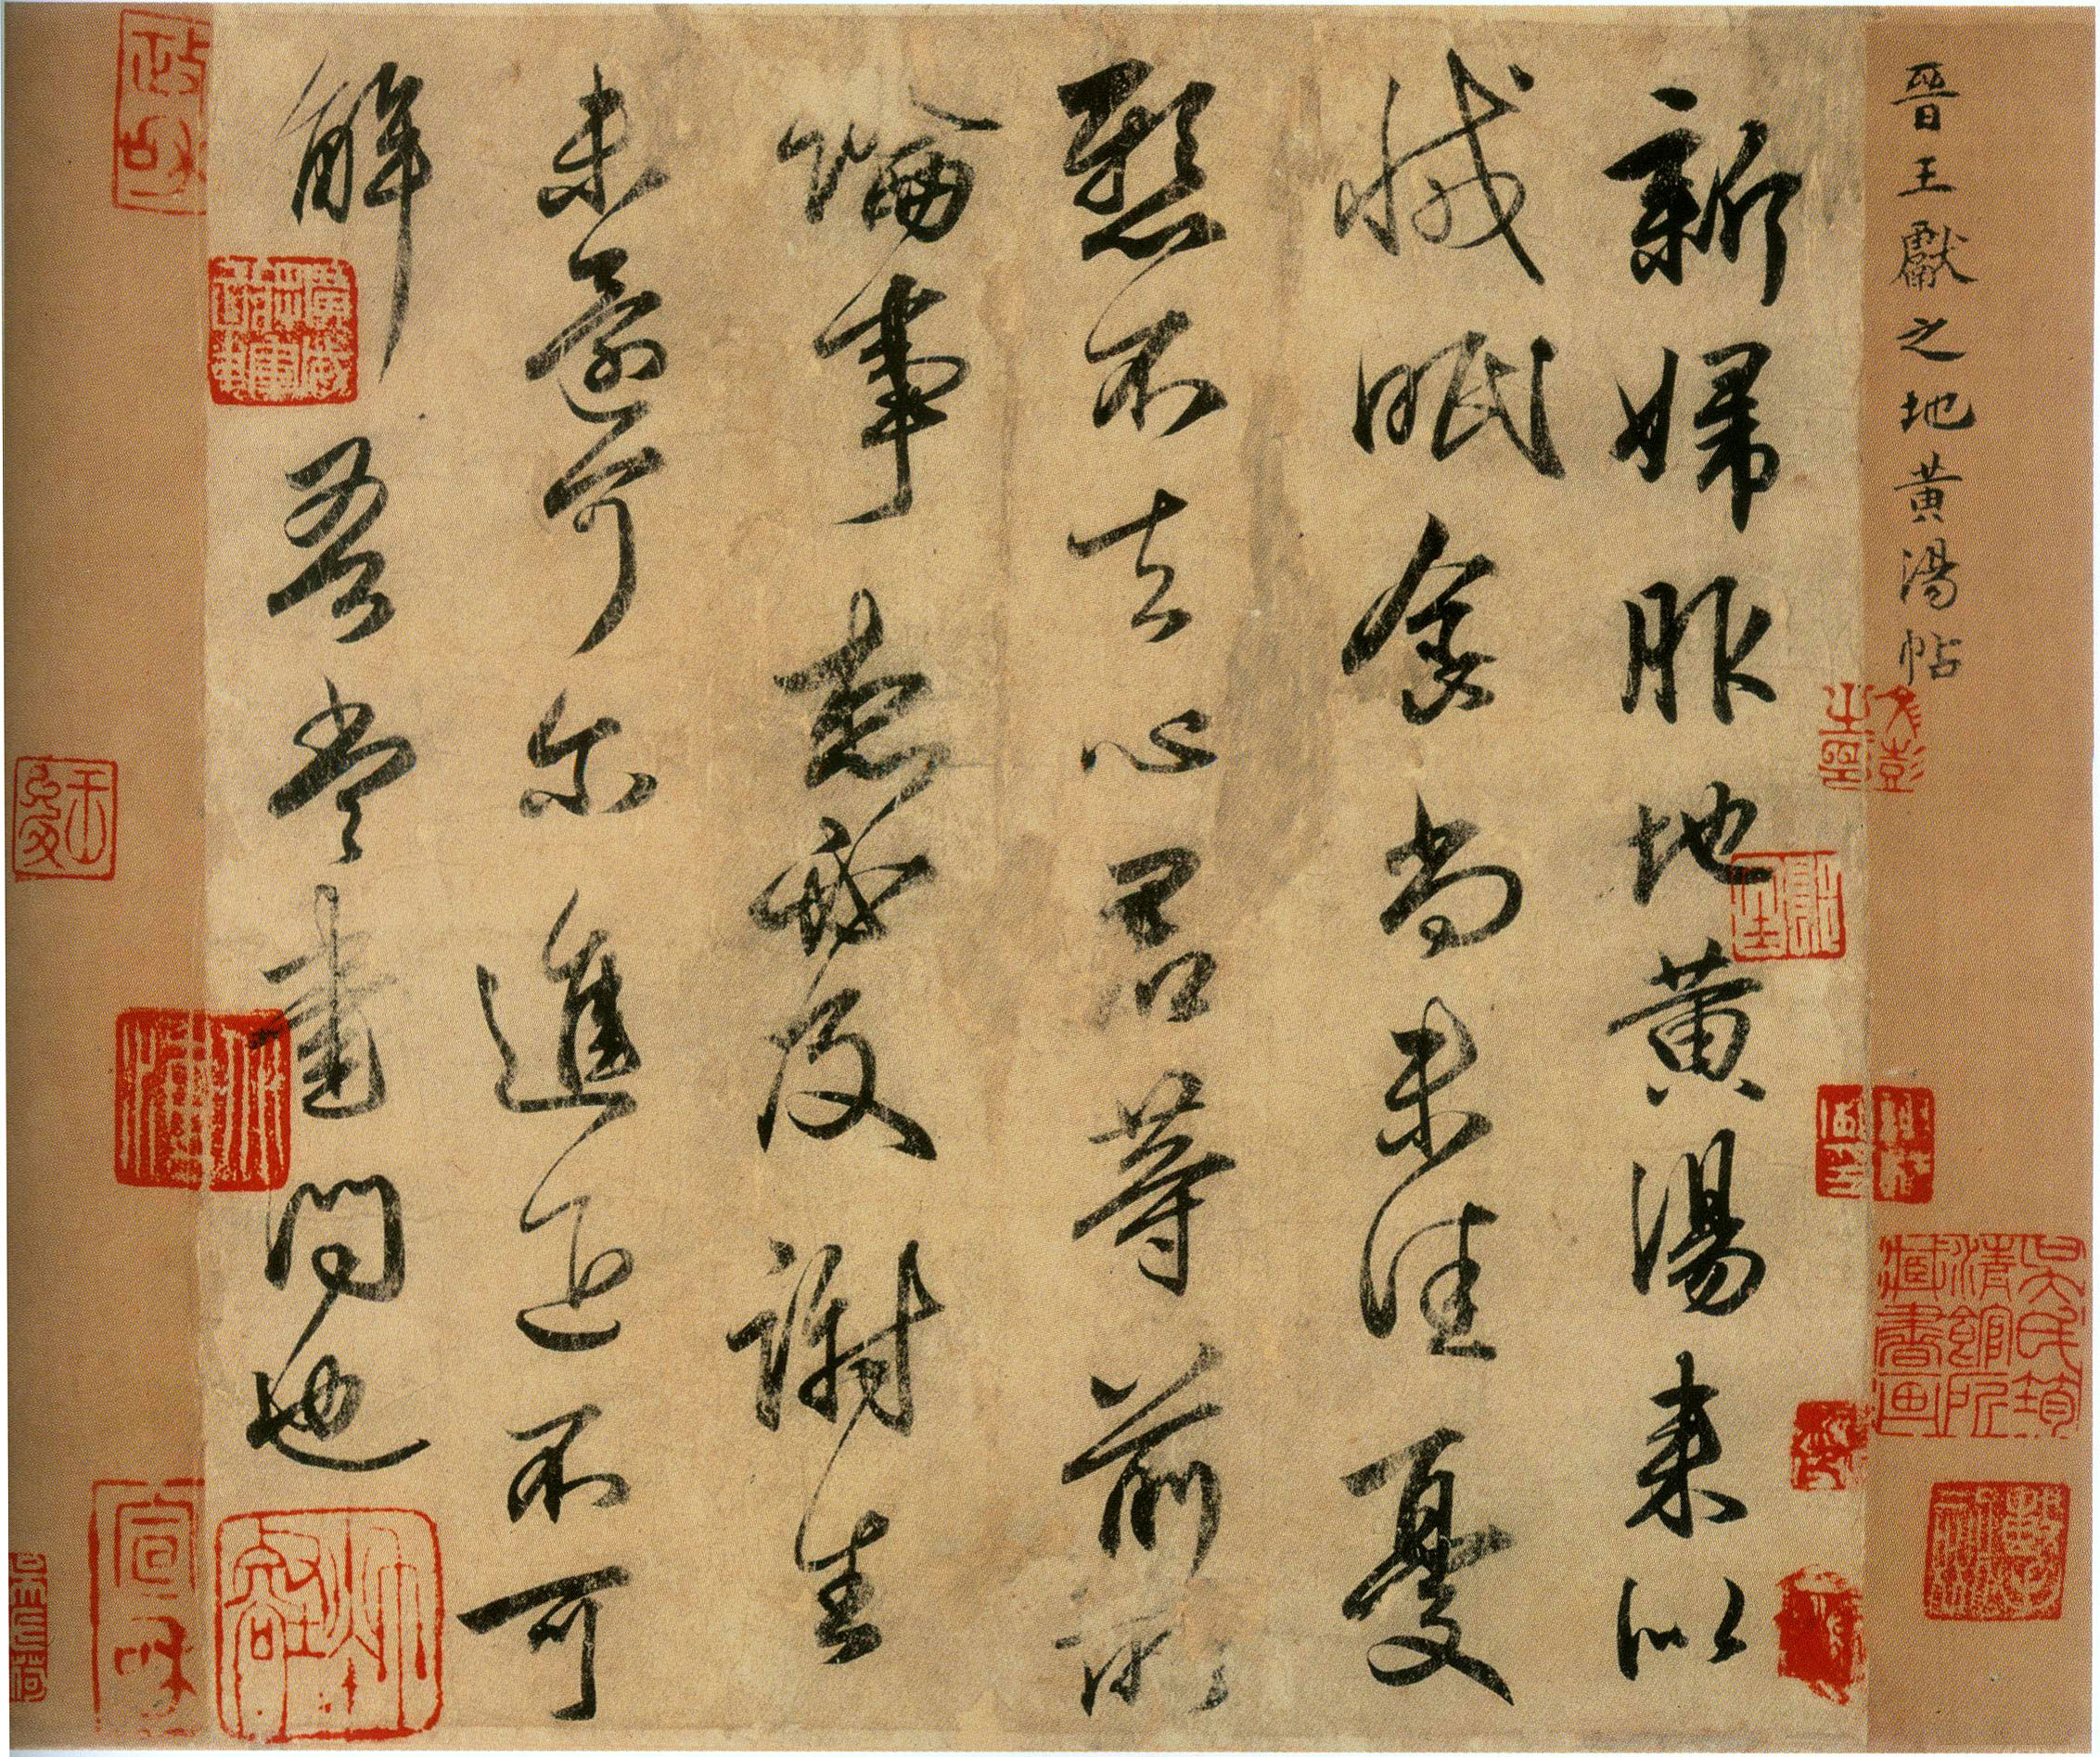 Chinese calligraphy - Wikipedia